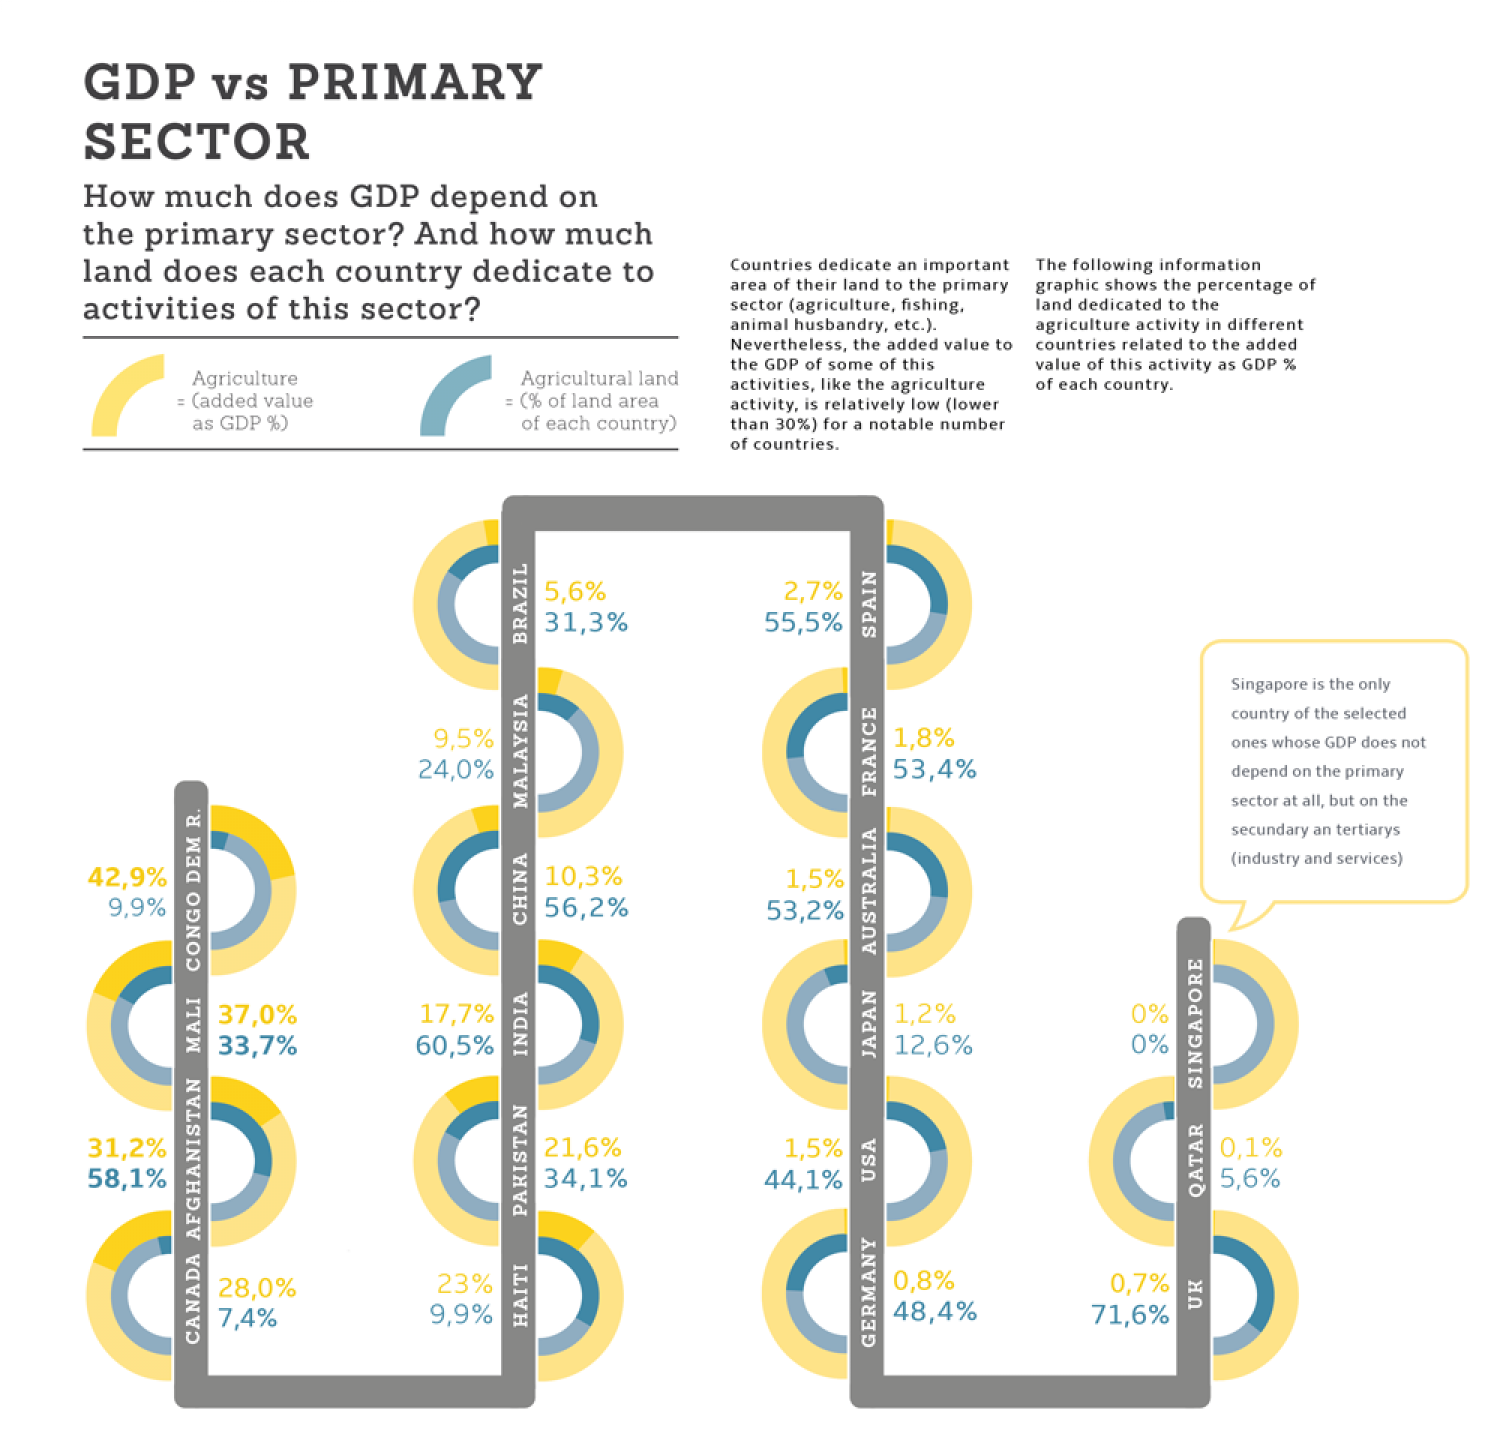 GDP vs Primary sector Infographic